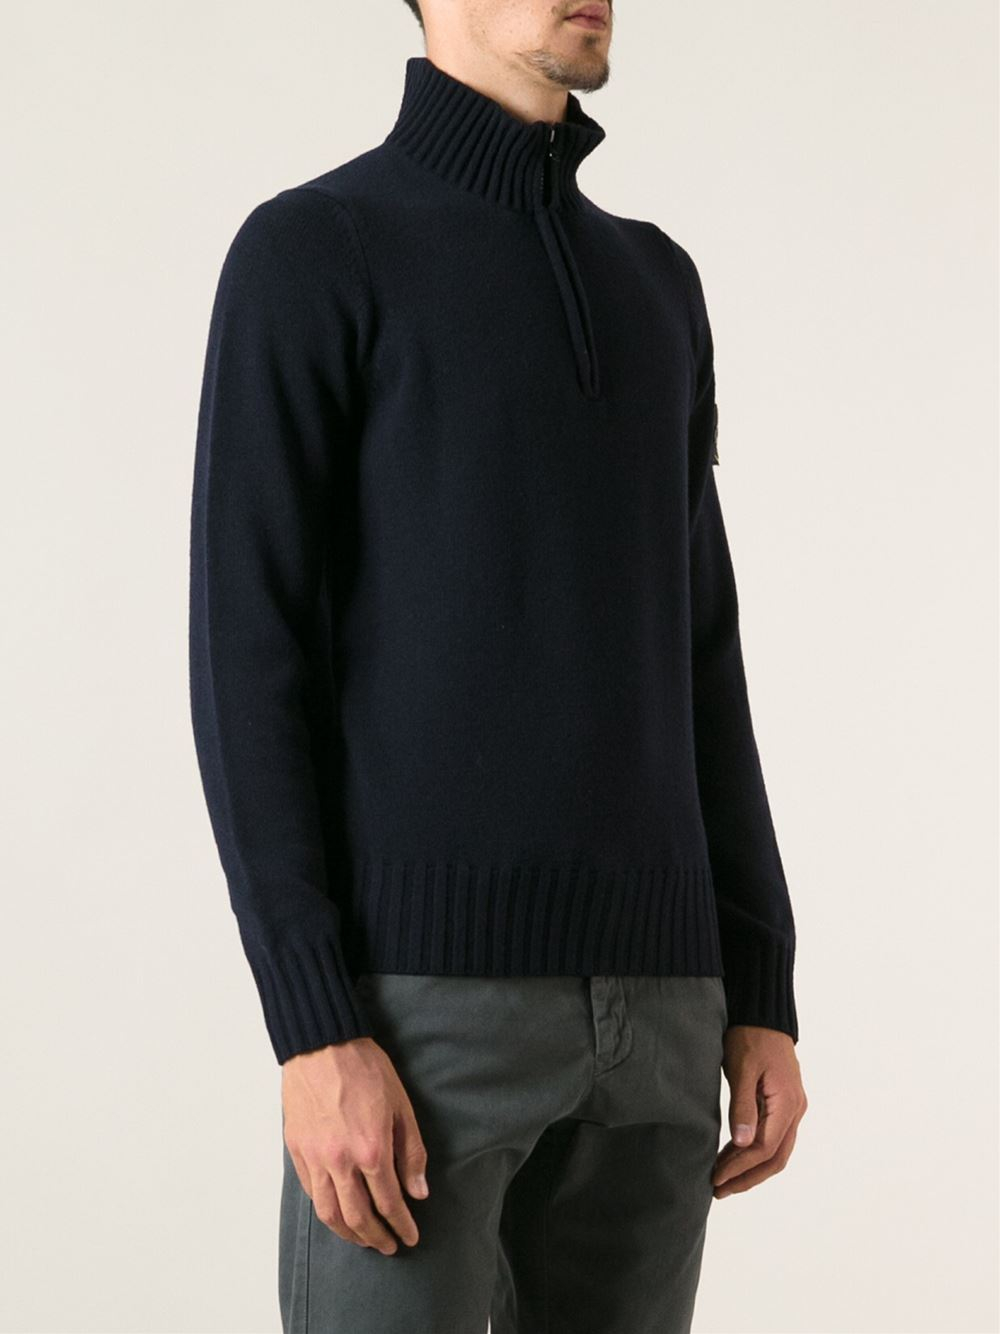 How Does Stone Island Fit Reddit